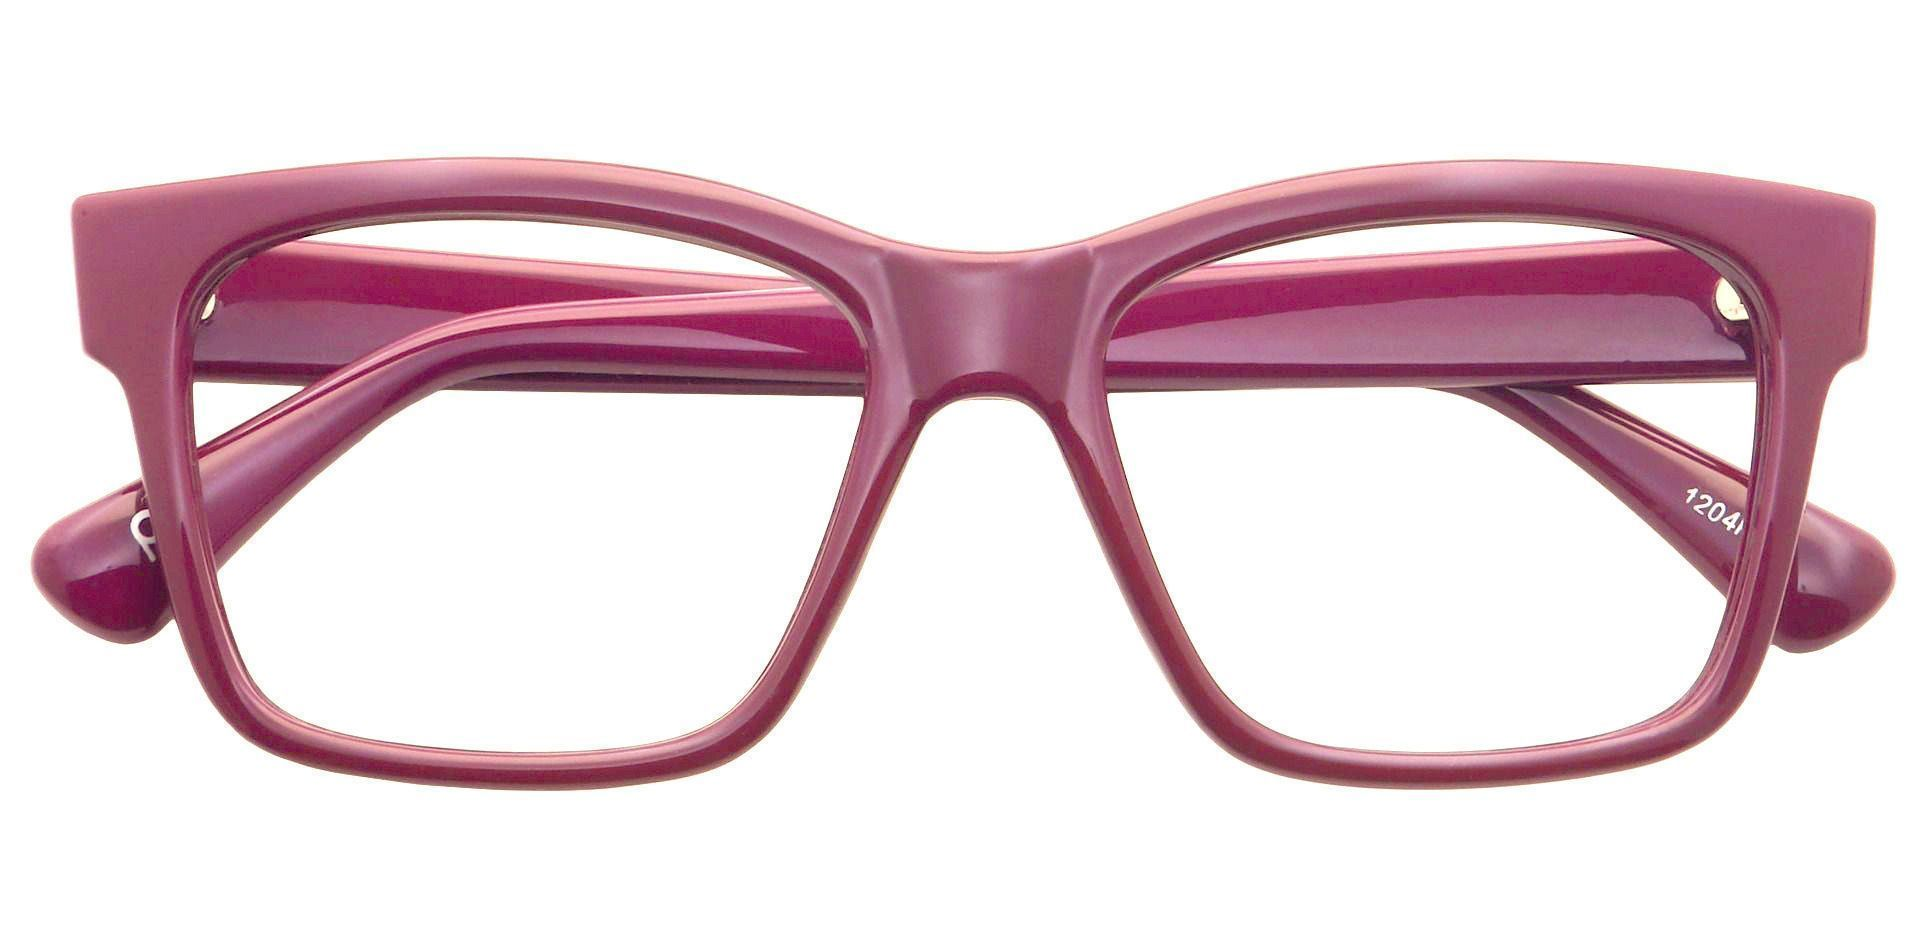 Brinley Rectangle Non-Rx Glasses - Purple